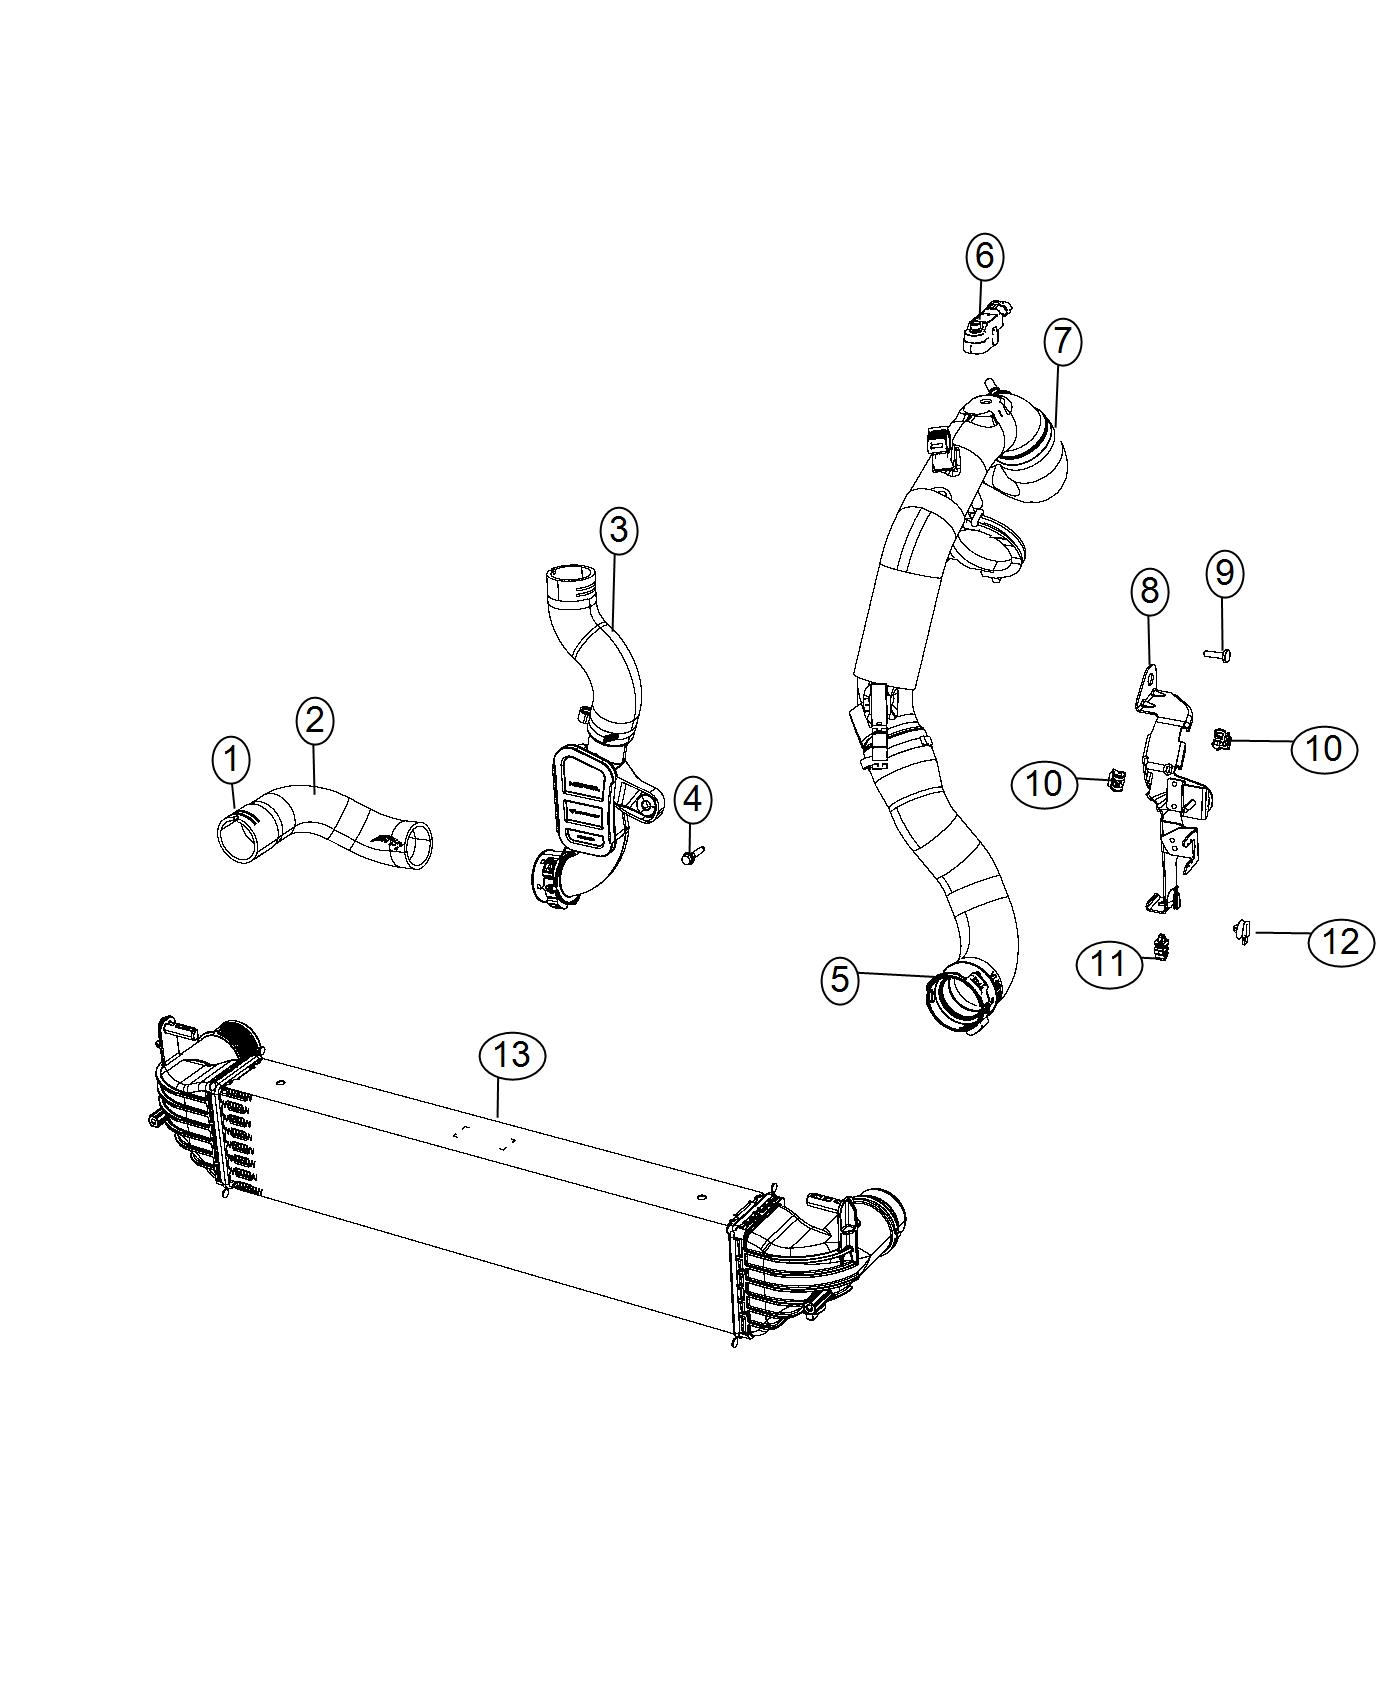 i2339427 Radiator Fan Wiring Diagram For Jeep Renegade on